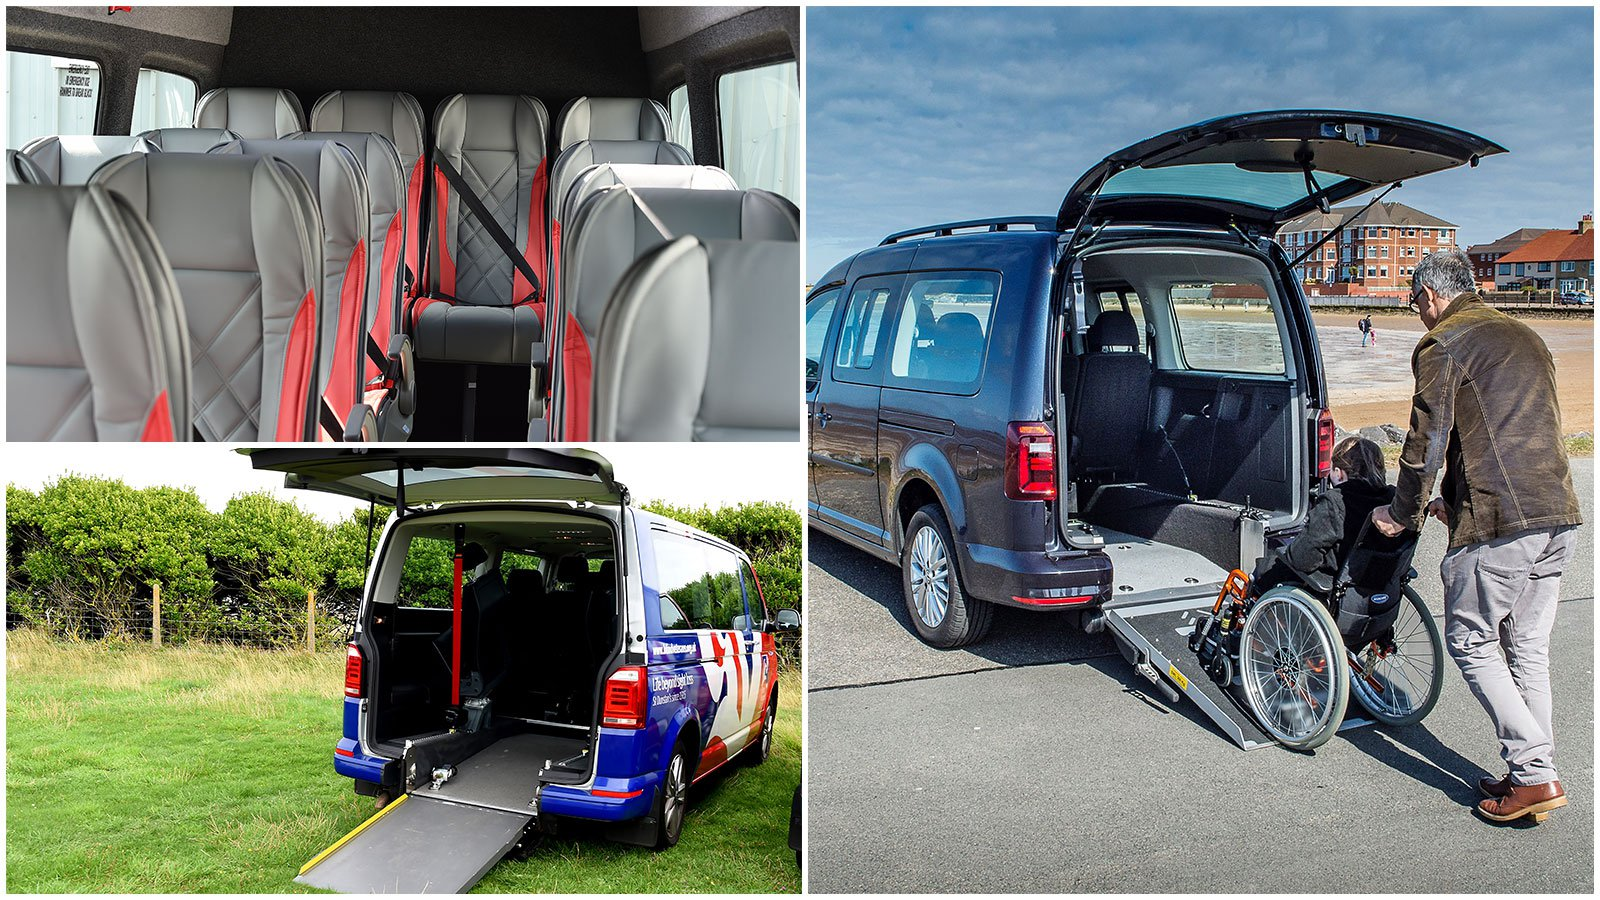 Volkswagen passenger carriers of all sizes can be converted for disable passengers or VIPs